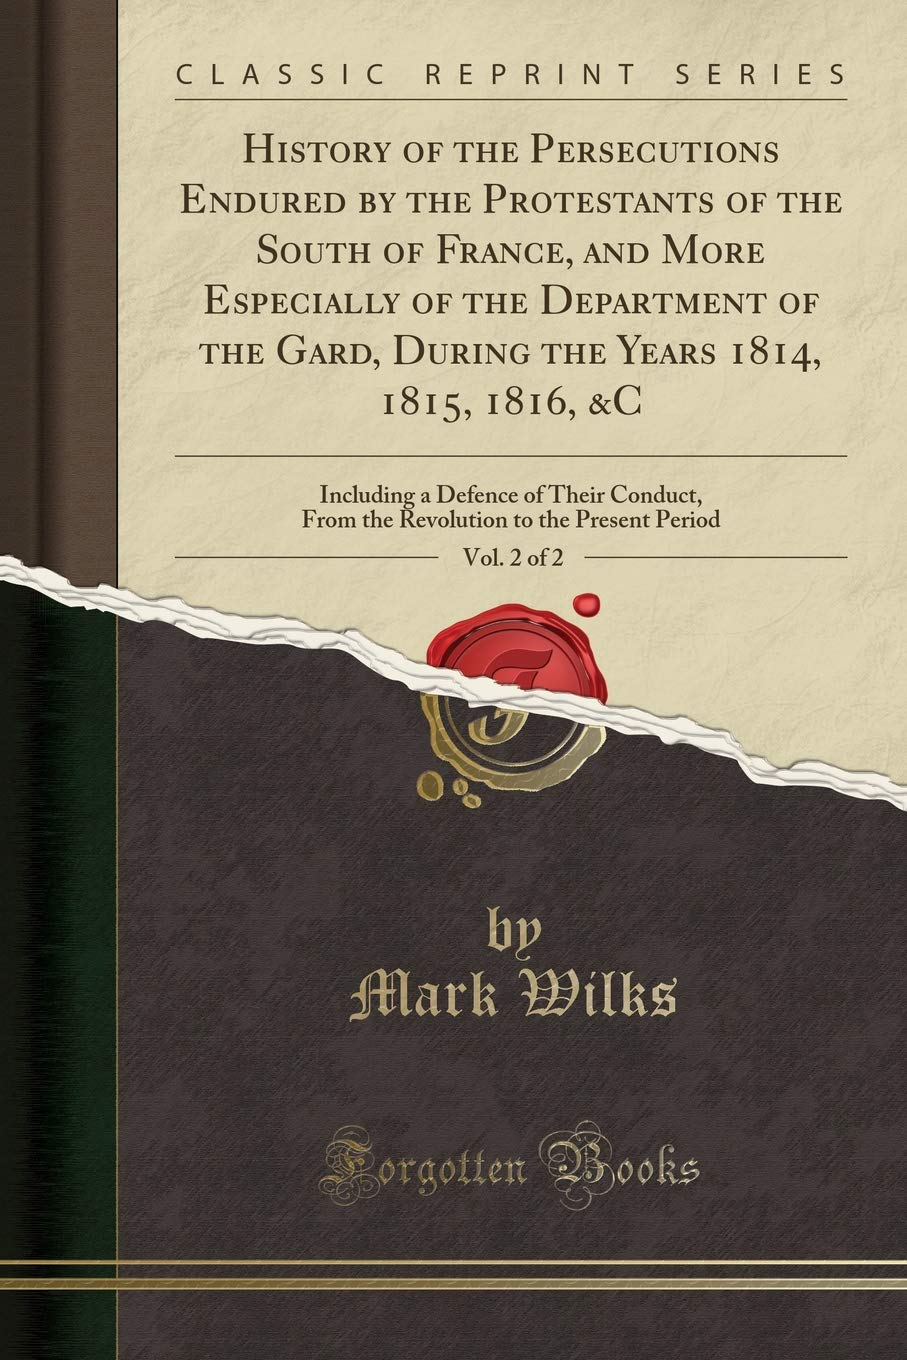 Download History of the Persecutions Endured by the Protestants of the South of France, and More Especially of the Department of the Gard, During the Years ... Conduct, From the Revolution to the Present pdf epub